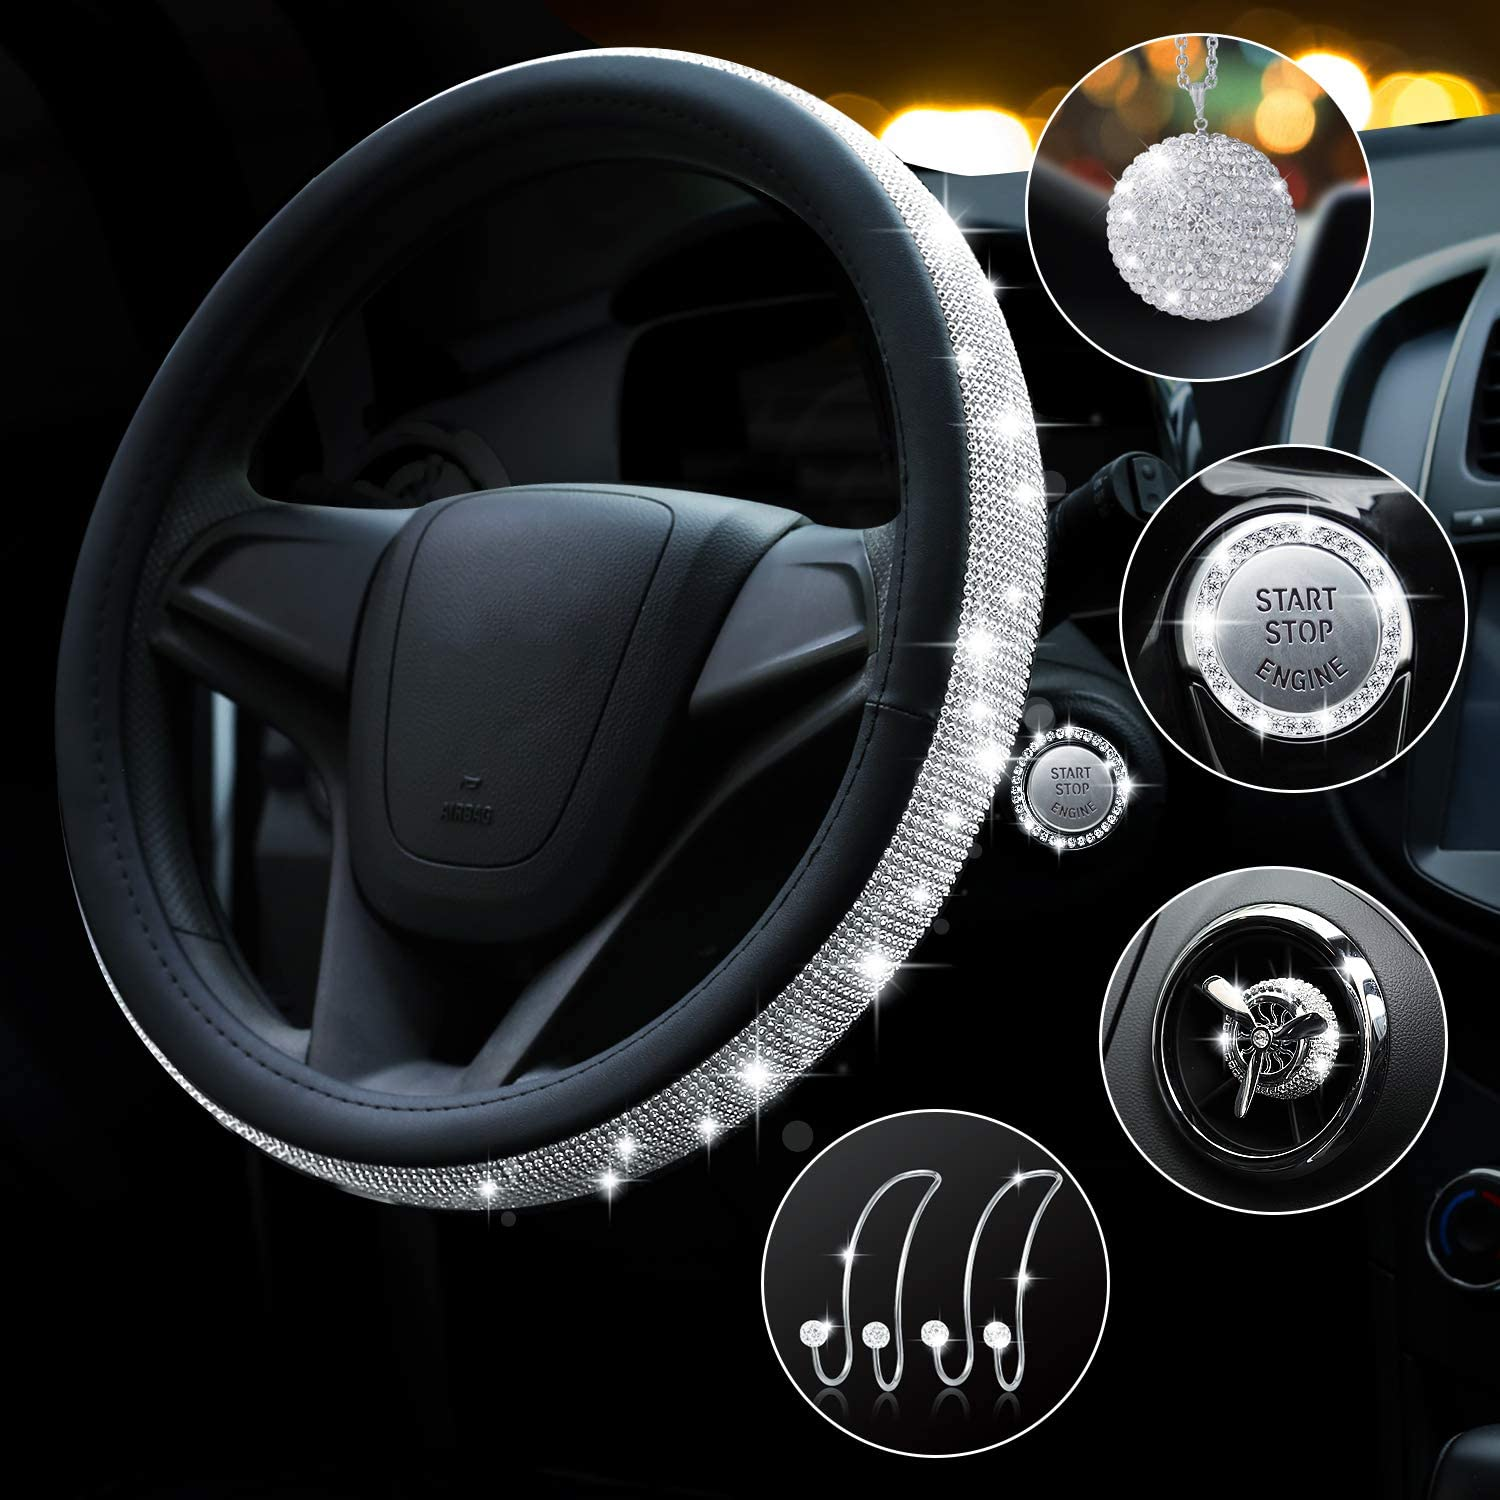 Bling Rhinestone Steering Wheel Cover In Topics on TV Universal 15 Women Ranking integrated 1st place for